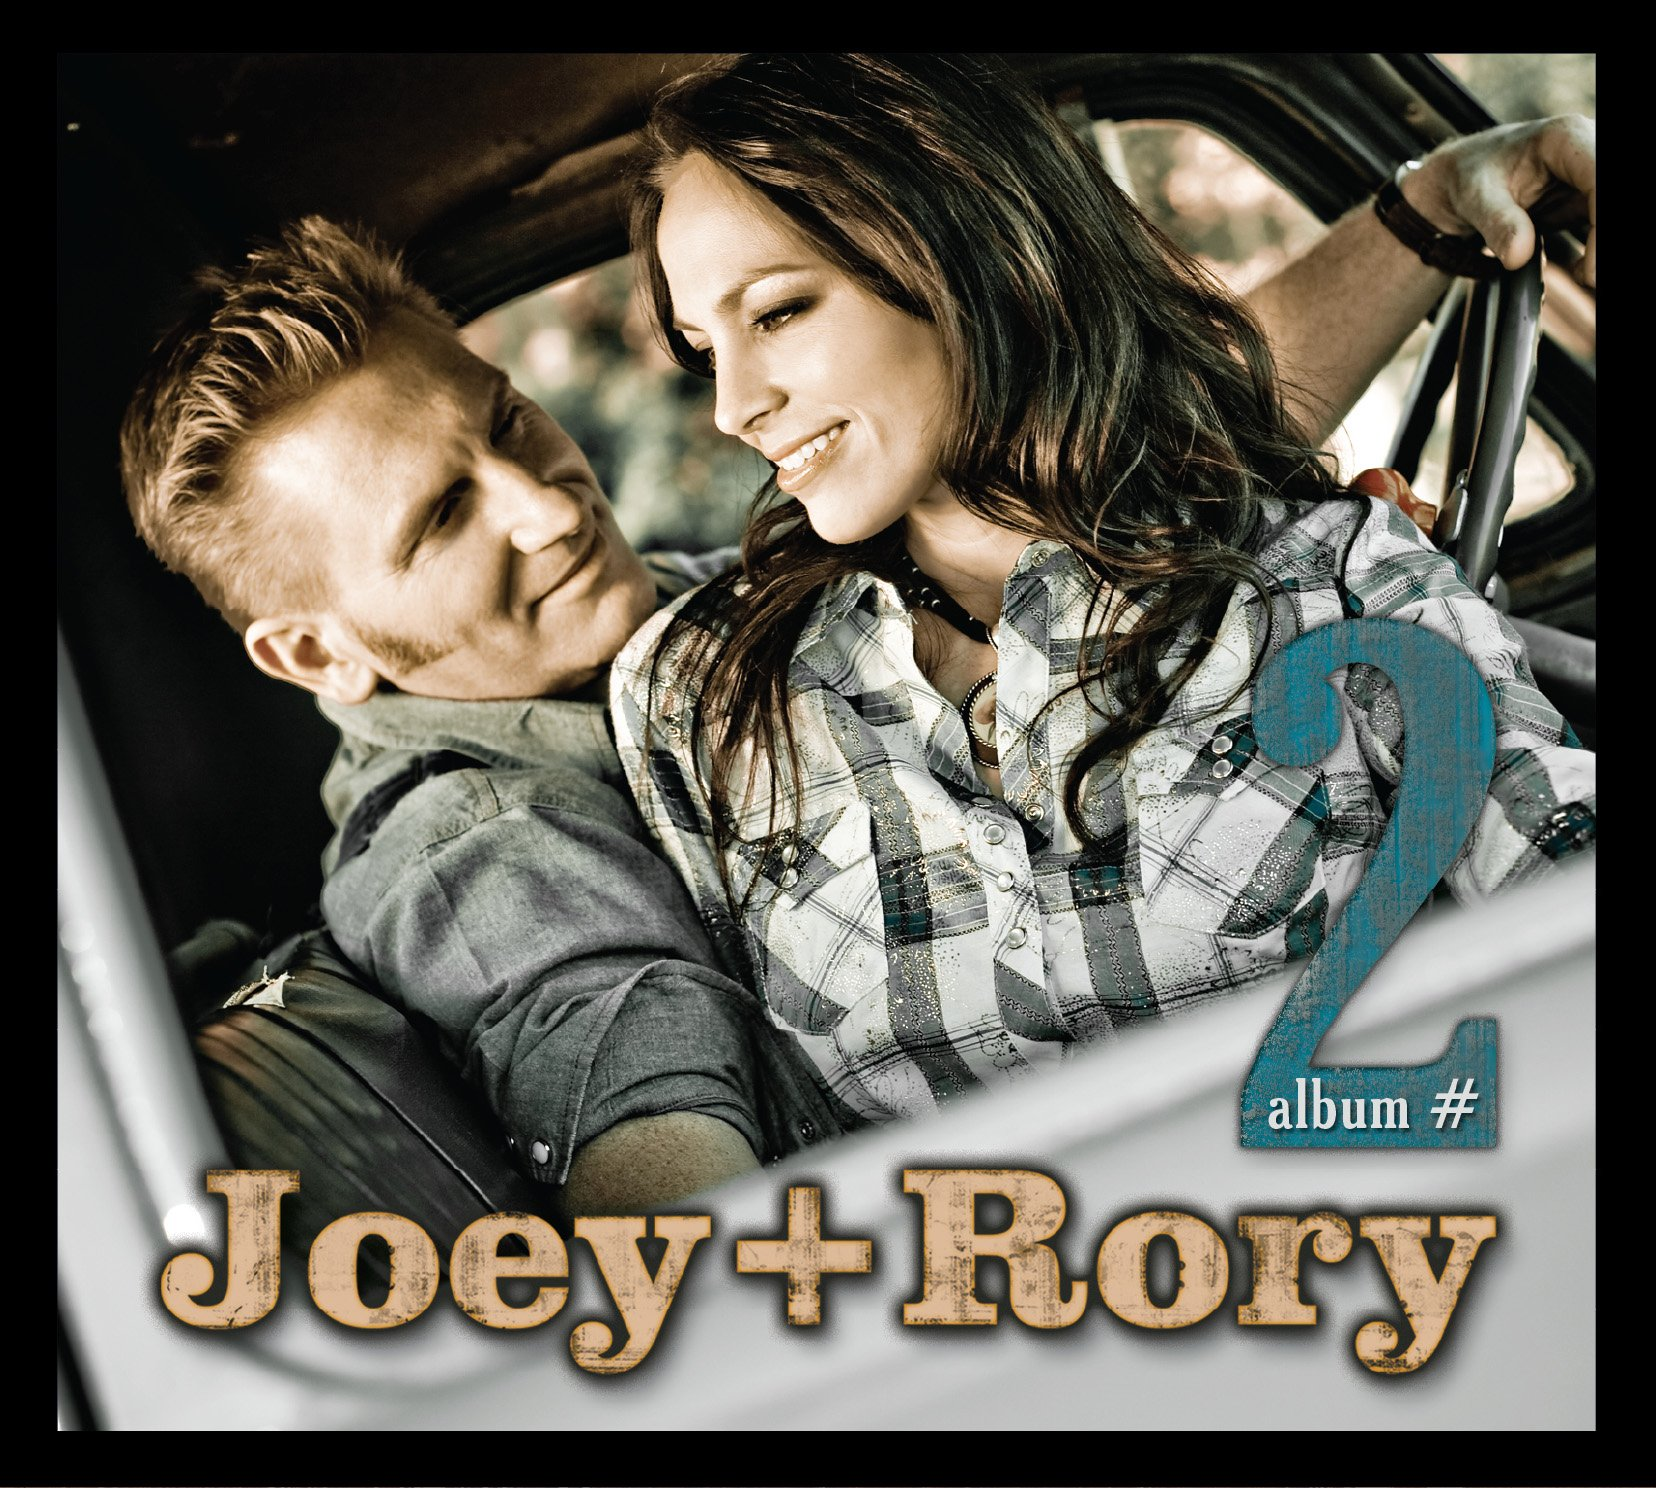 Joey + Rory - Album Number Two - Amazon.com Music